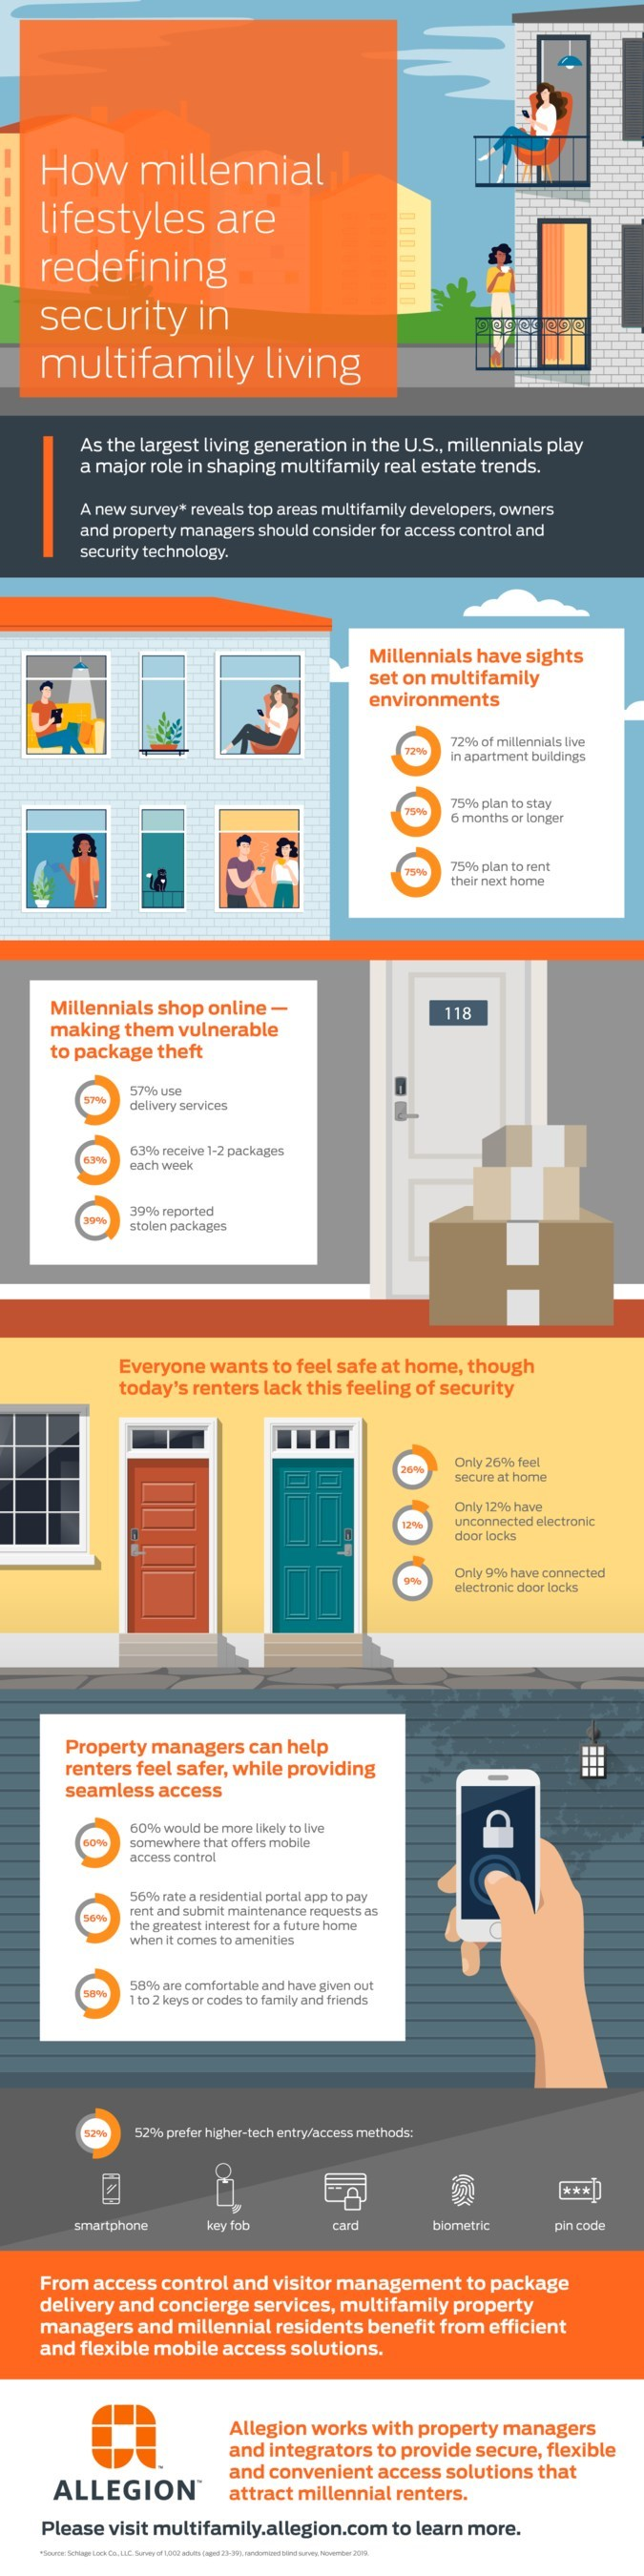 Home Safe Home: How Millennial Preferences Are Redefining Multifamily Living